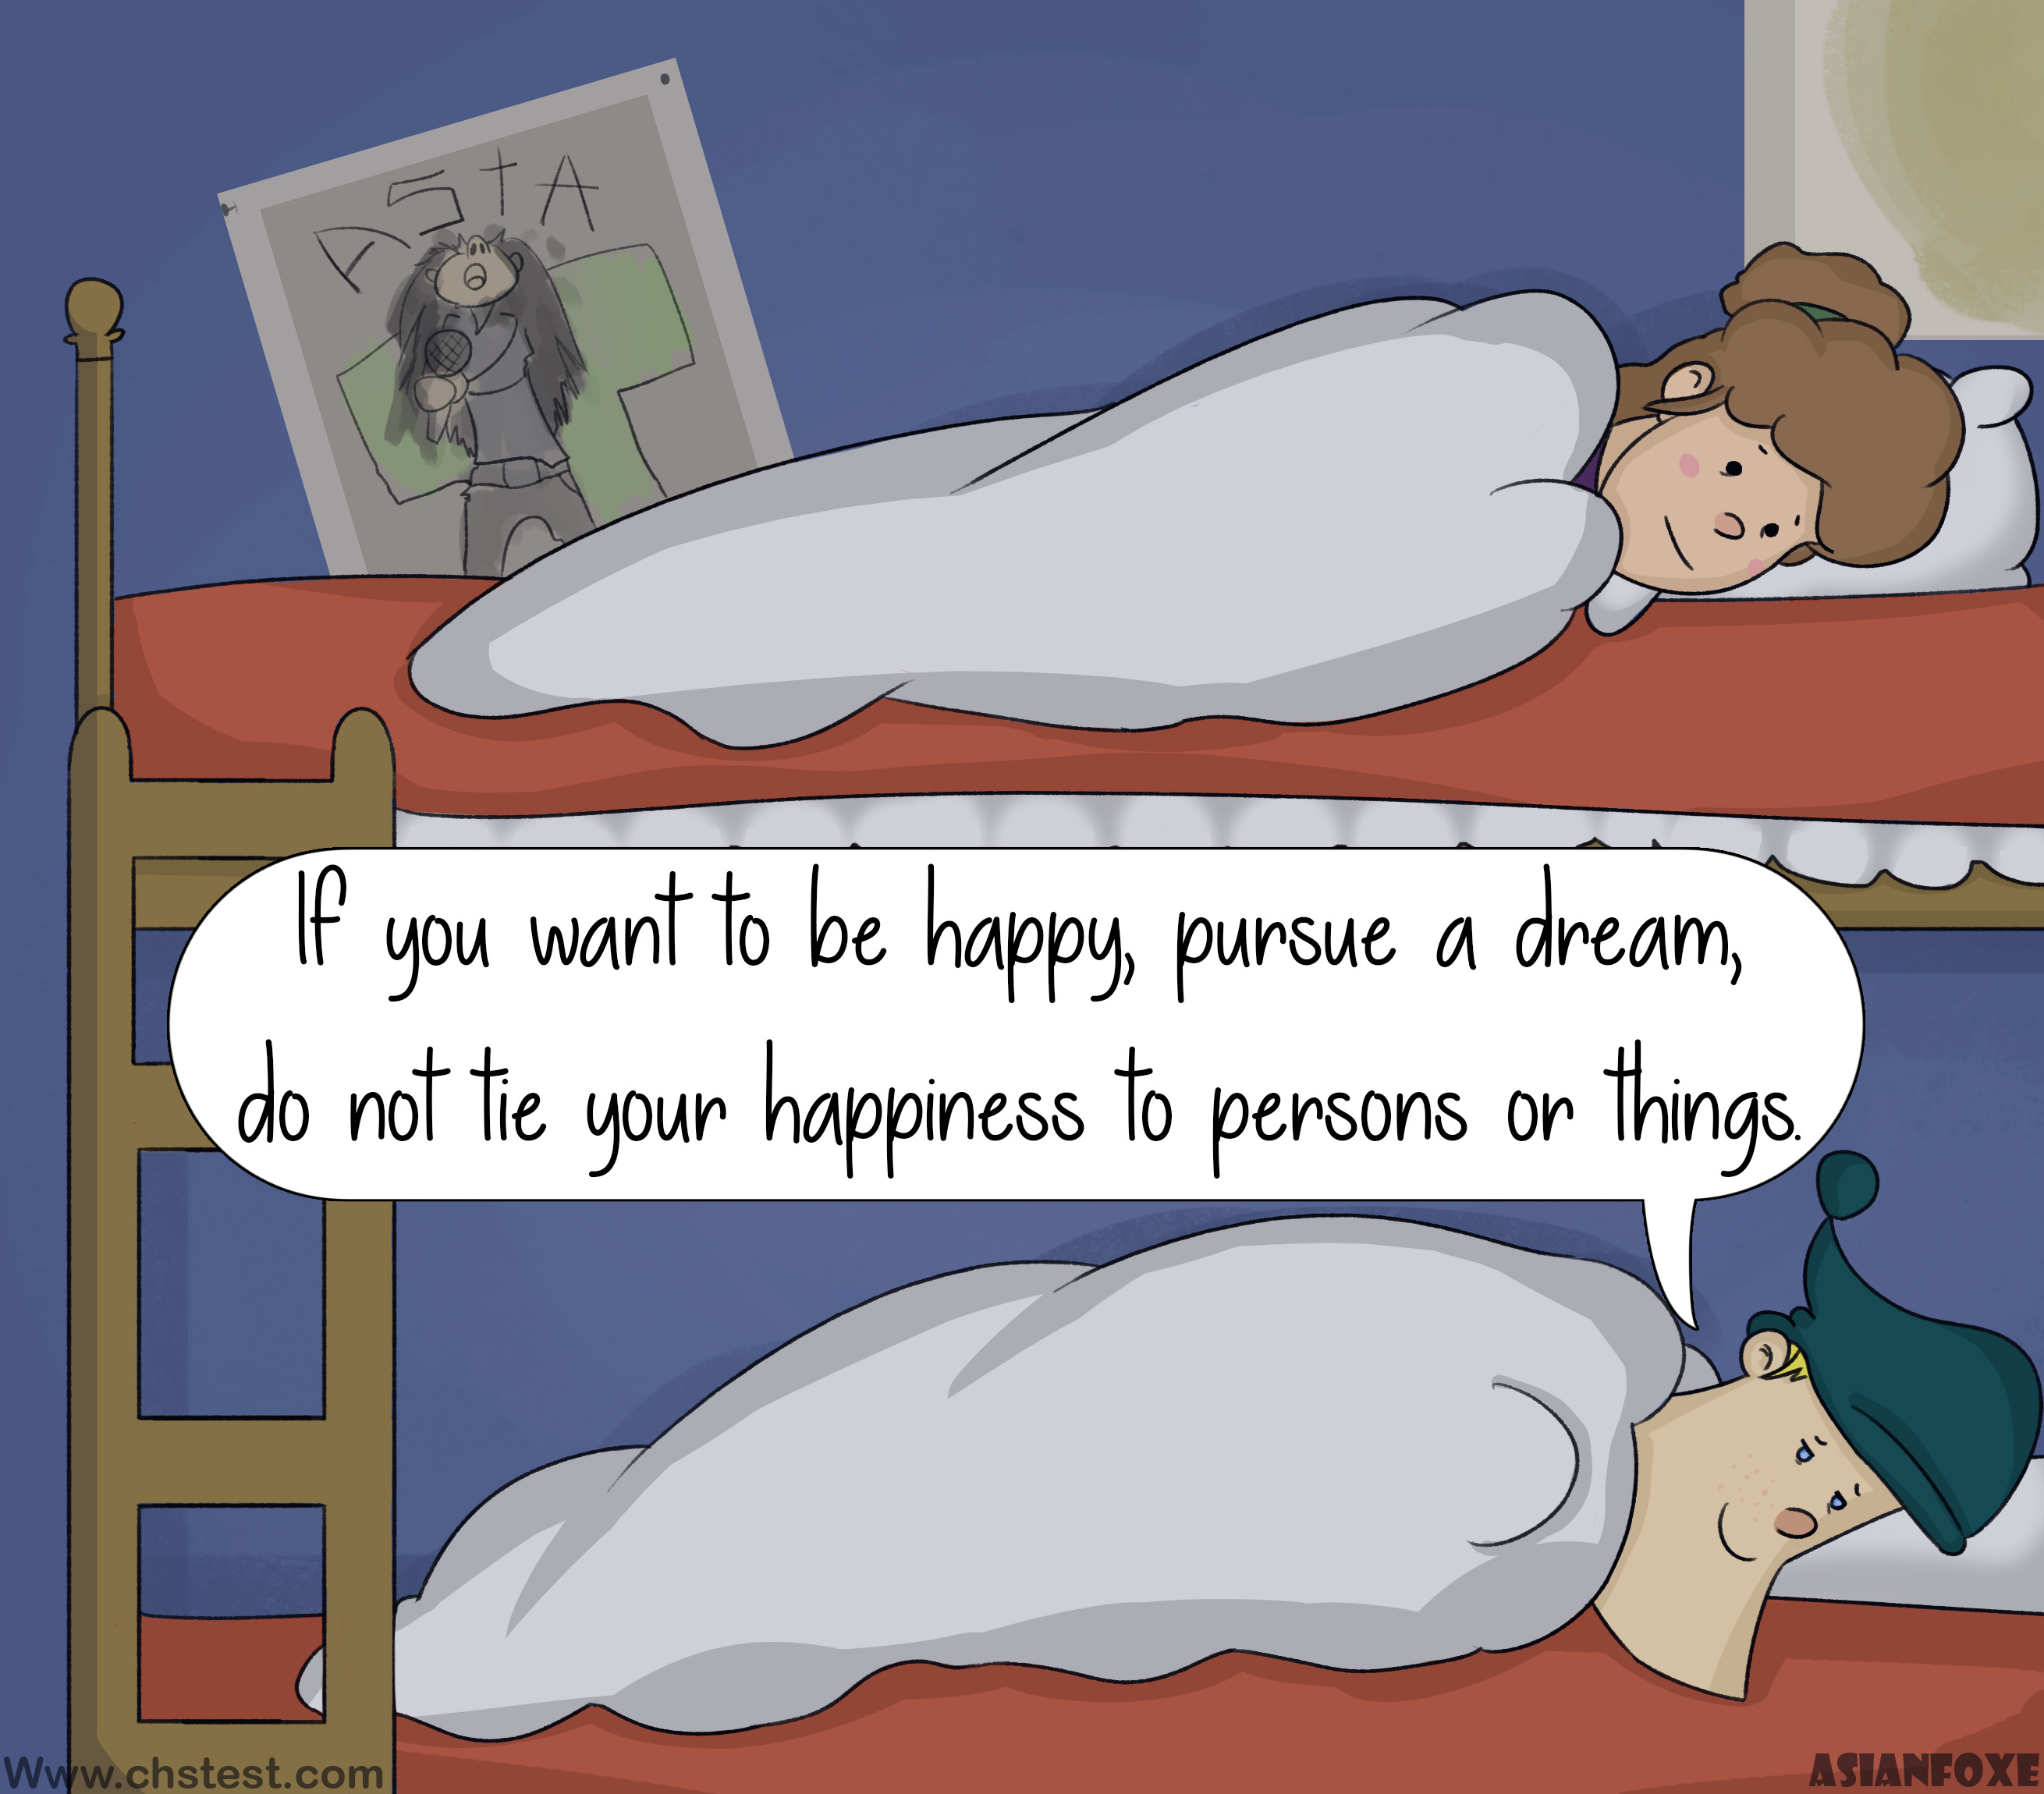 Self-confidence: If you want to be happy, pursue a dream, do not tie your happiness to persons or things!